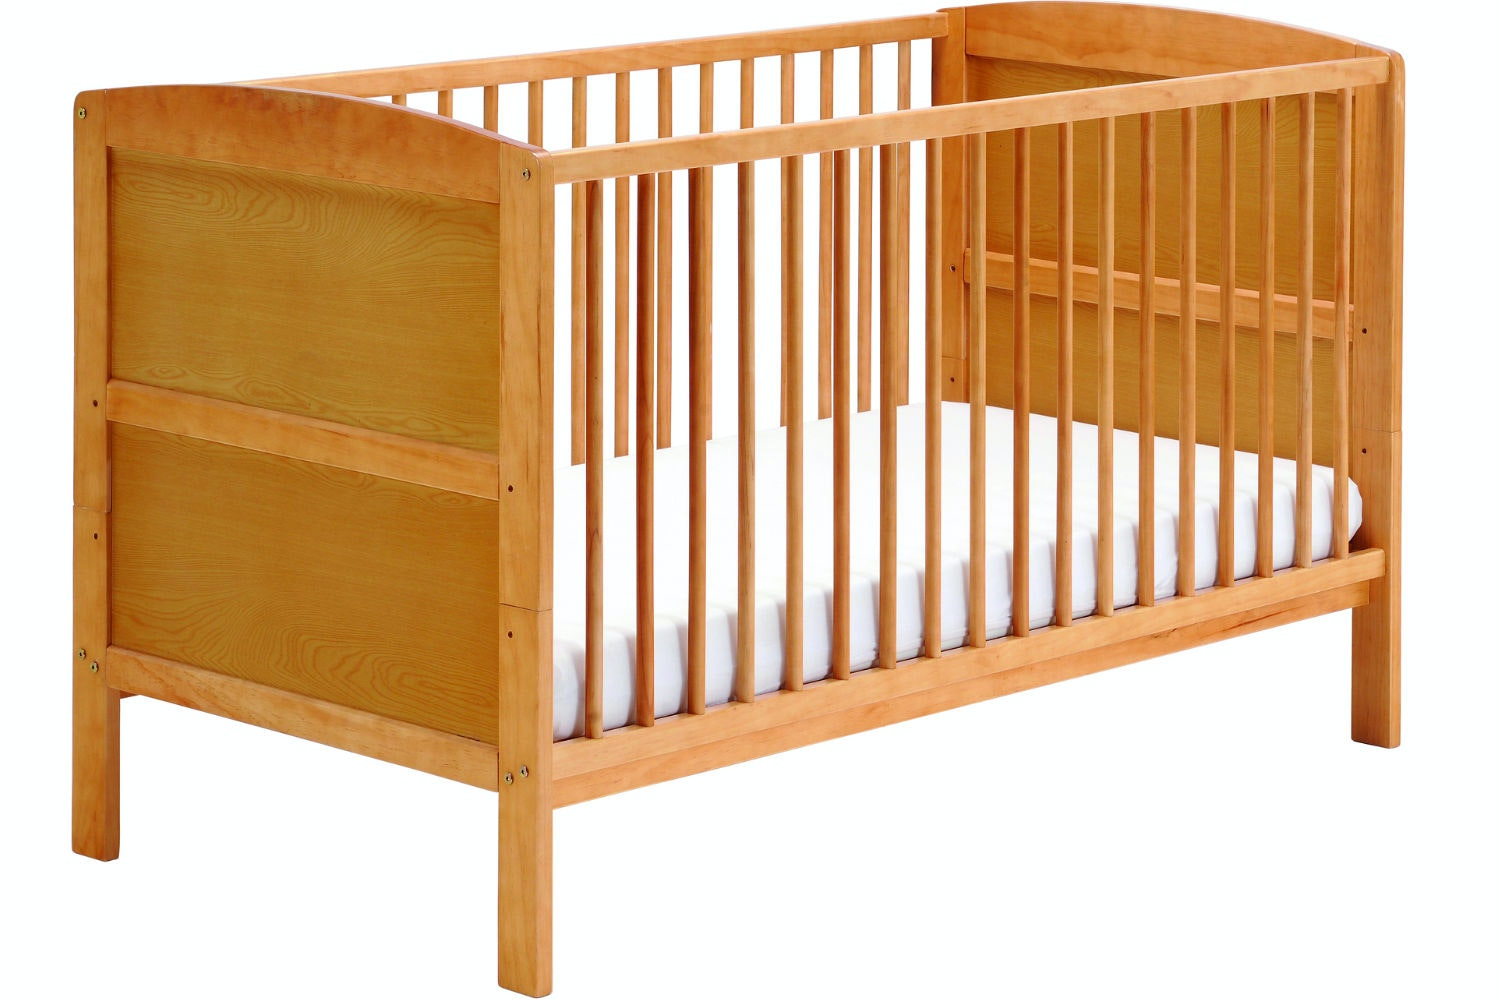 Hudson 2 in 1 Cot Bed | Antique Pine